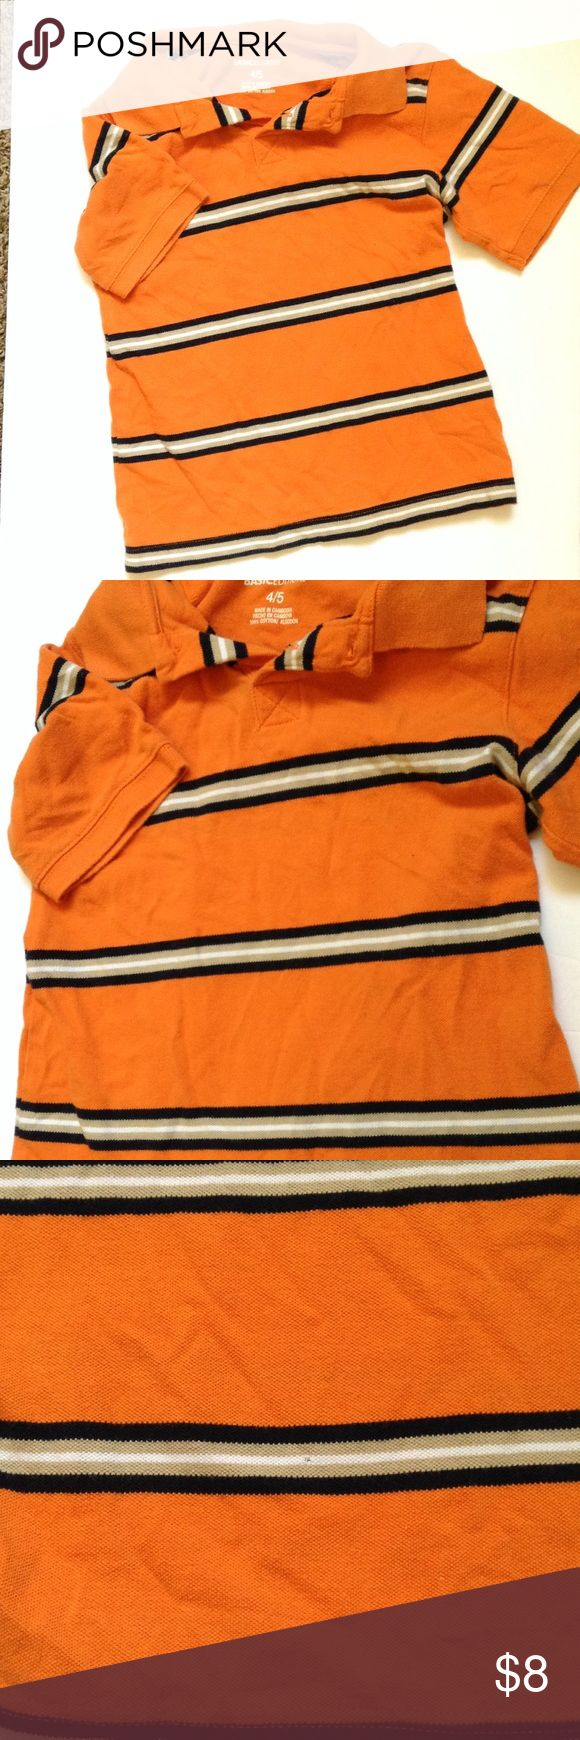 Boys BASIC EDITION STRIPED POLO, Pullover Orange In good used condition. Small price tag hole on back side, toward bottom. See photos. Sold as is. Size 4/5. Shirts & Tops Polos